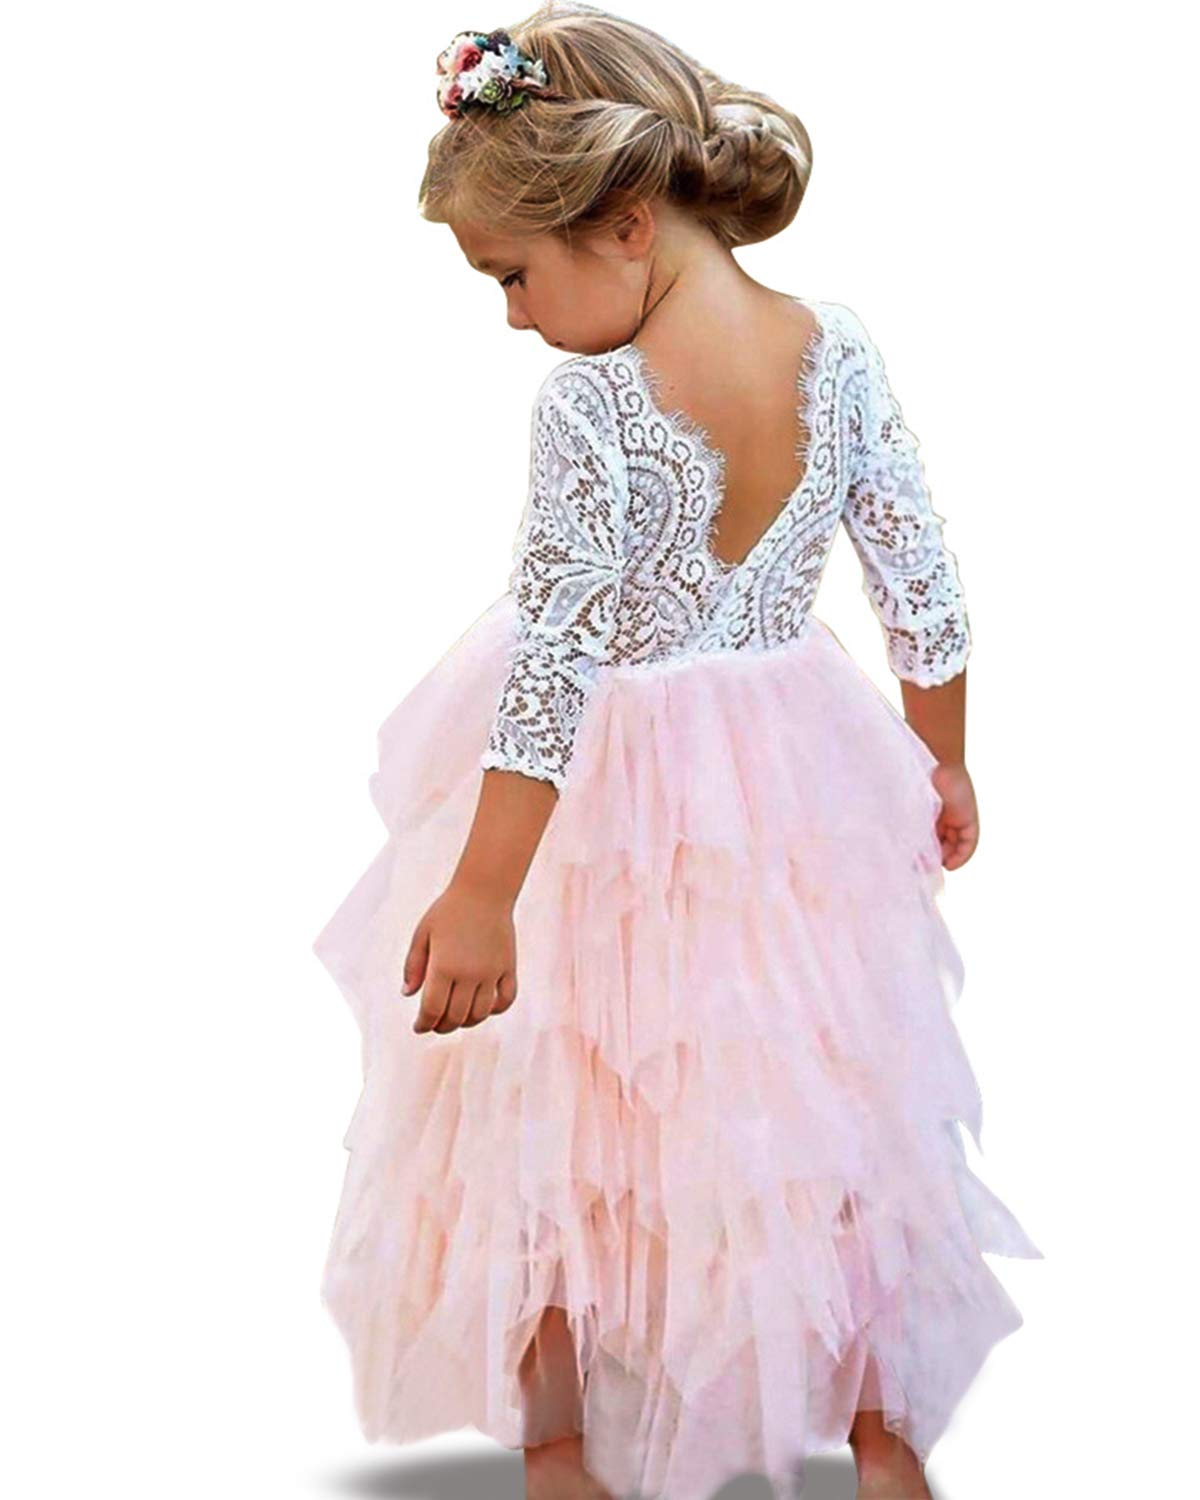 NNJXD Backless Lace Back Tutu Tulle Princess Party Dress Flower Girls Dresses Size (120) 4-5 Years Pink